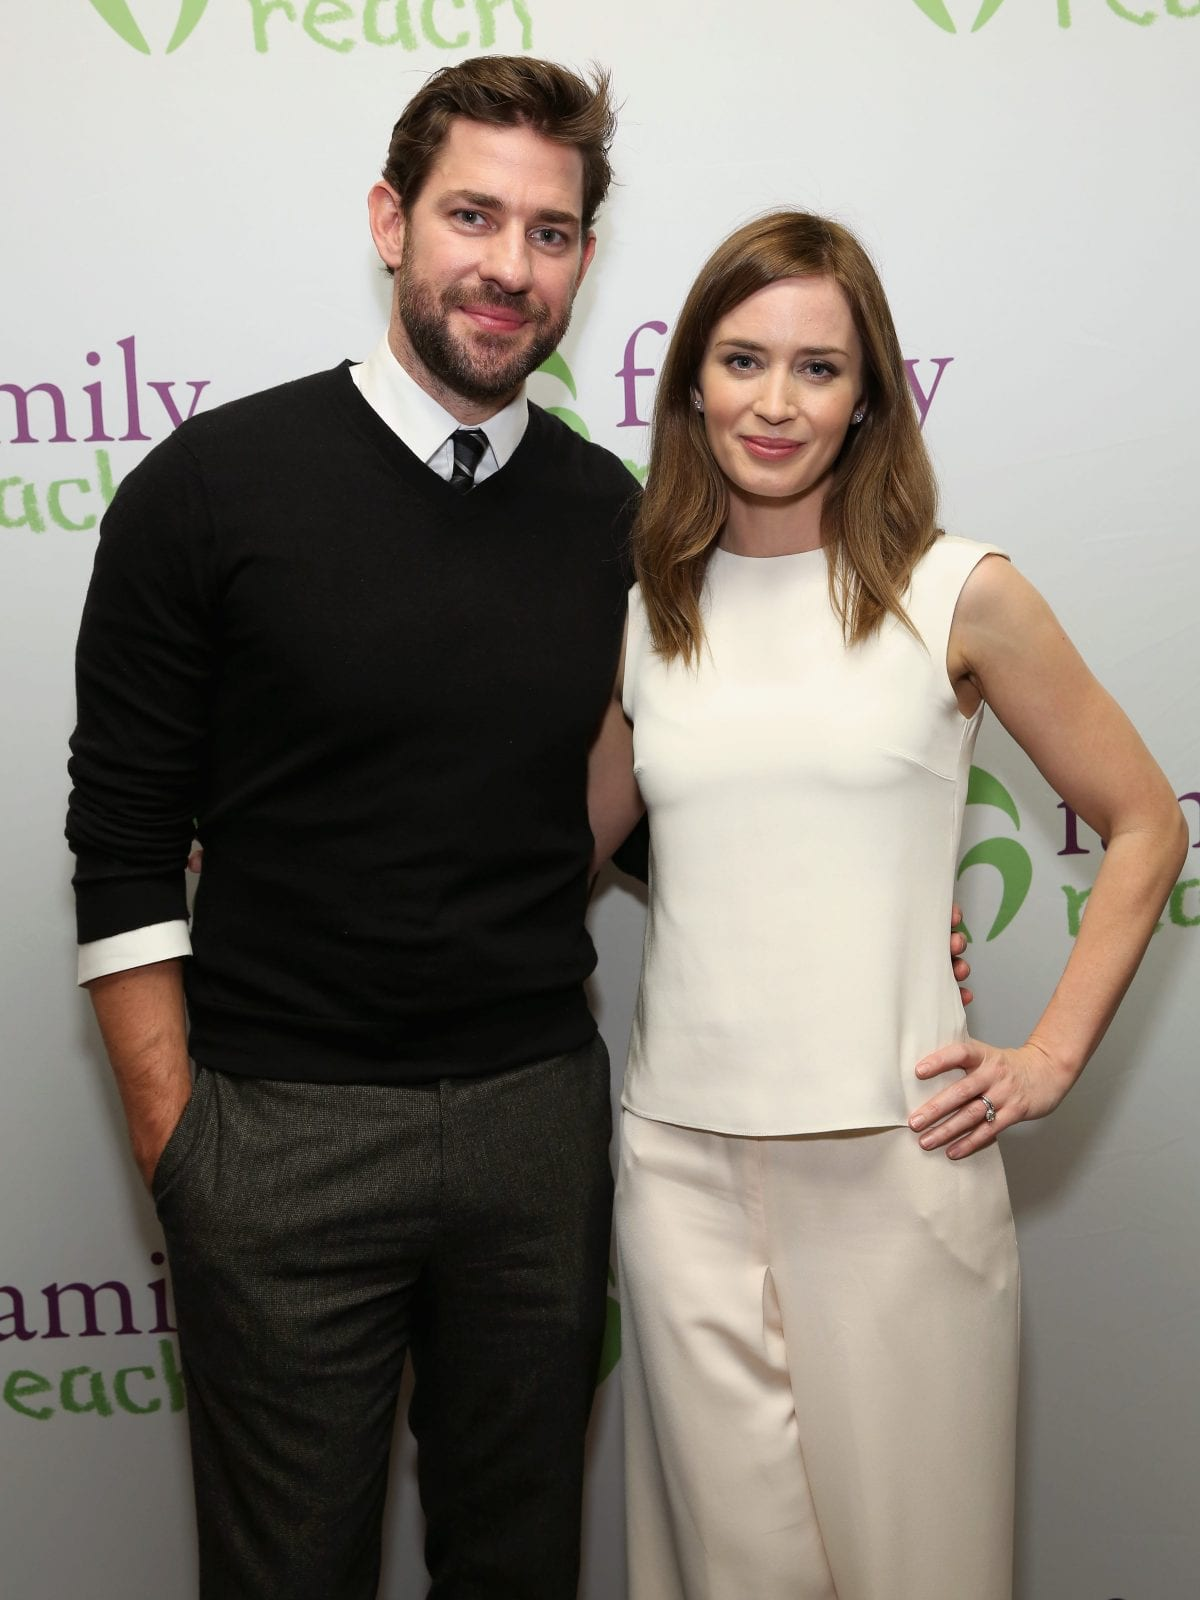 NEW YORK, NY - NOVEMBER 02: Actors John Krasinski (L) and Emily Blunt attend Family Reach's Cooking Live From New York: Emily Blunt & John Krasinski join celebrity chefs Ming Tsai and Morimoto, to help families fighting pediatric cancer at The Ritz-Carlton New York, Battery Park on November 2, 2015 in New York City. (Photo by Cindy Ord/Getty Images for Family Reach Foundation) *** Local Caption *** John Krasinski; Emily Blunt